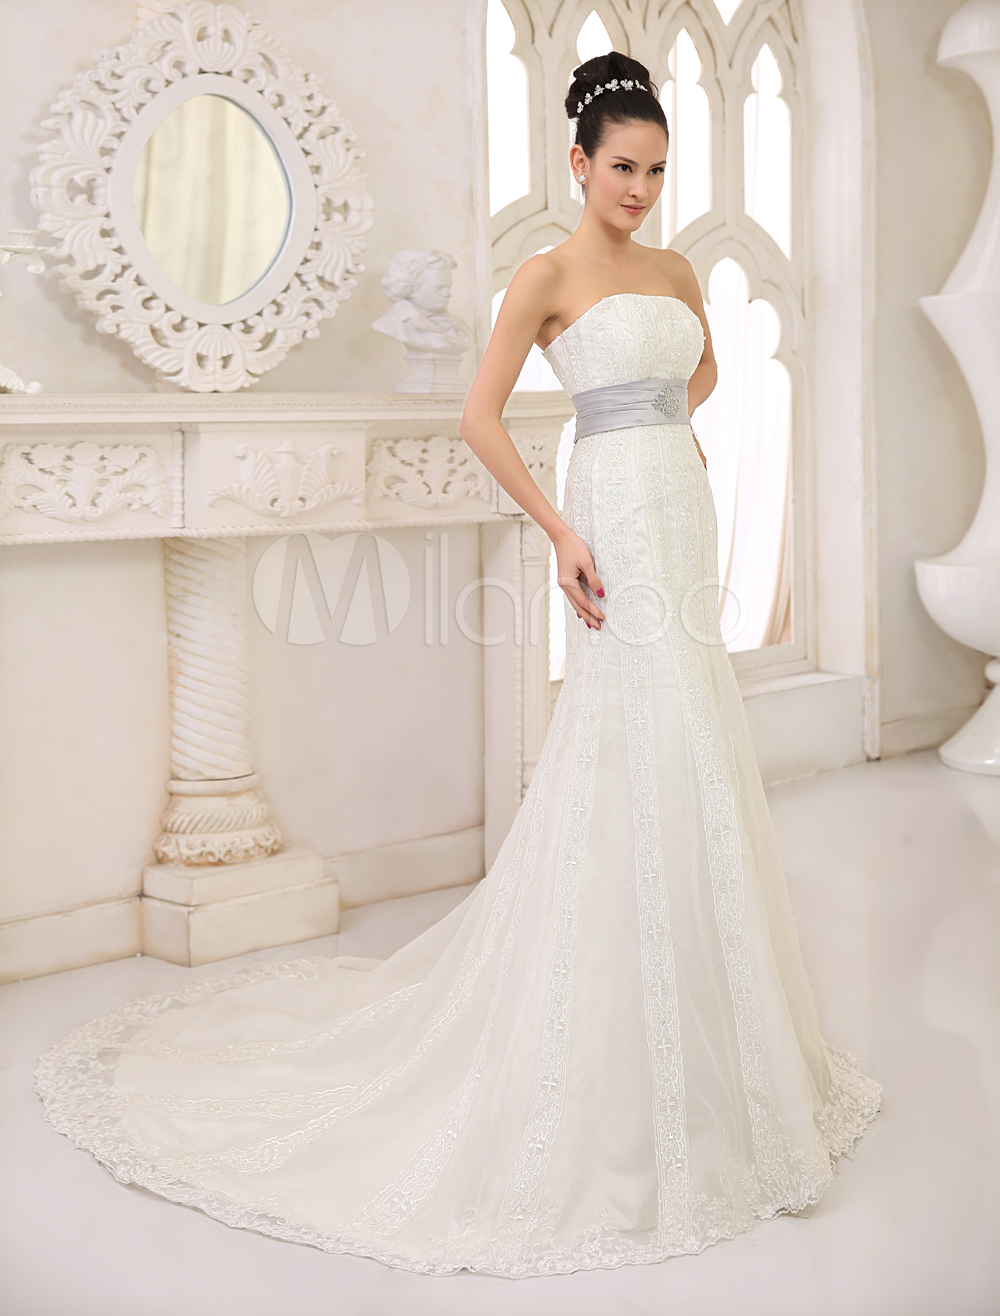 China Wholesale Dresses - Ivory Mermaid Trumpet Strapless Sash Beading Embroidery Floor Length Lace Satin Wedding Dress